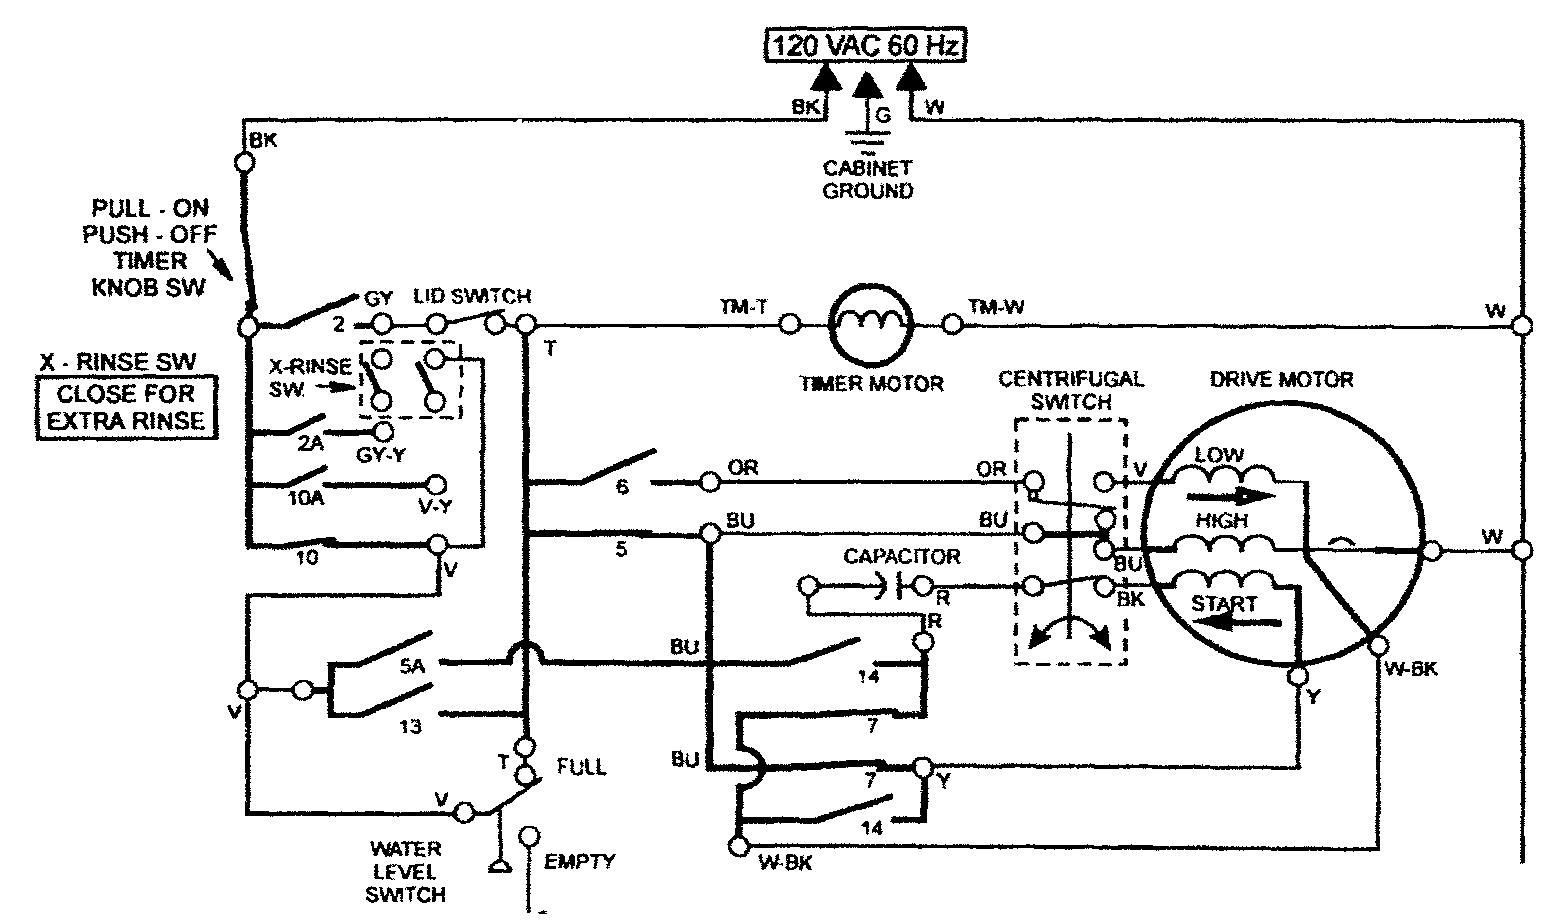 Whirlpool Trash Compactor Wiring Diagram -Wiring Harness Toyota Levin Ae111  | Begeboy Wiring Diagram Source | Whirlpool Trash Compactor Wiring Diagram |  | Begeboy Wiring Diagram Source